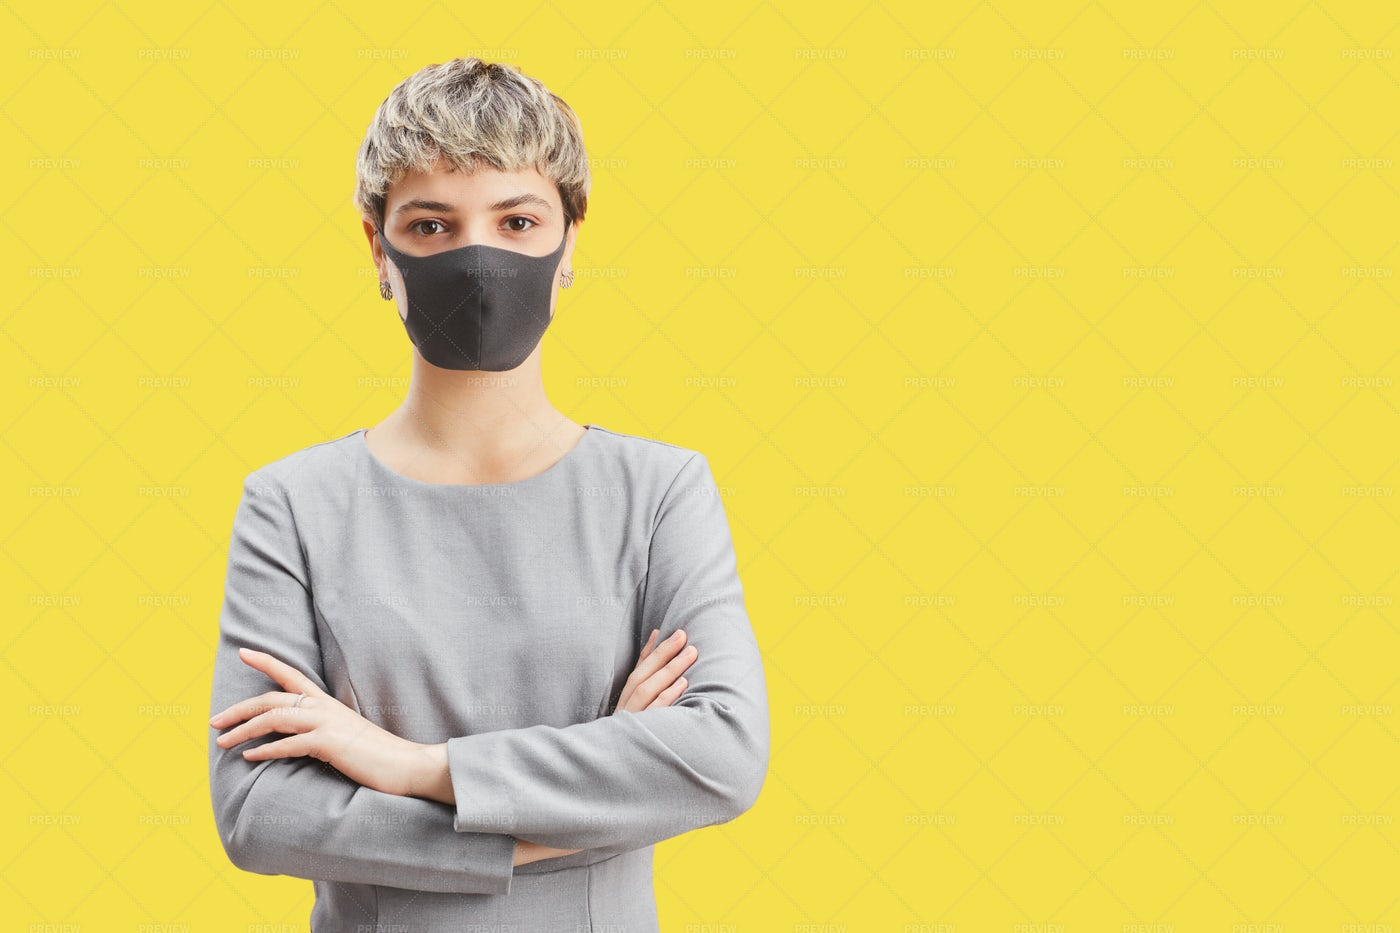 Young Woman Wearing Mask On Yellow: Stock Photos